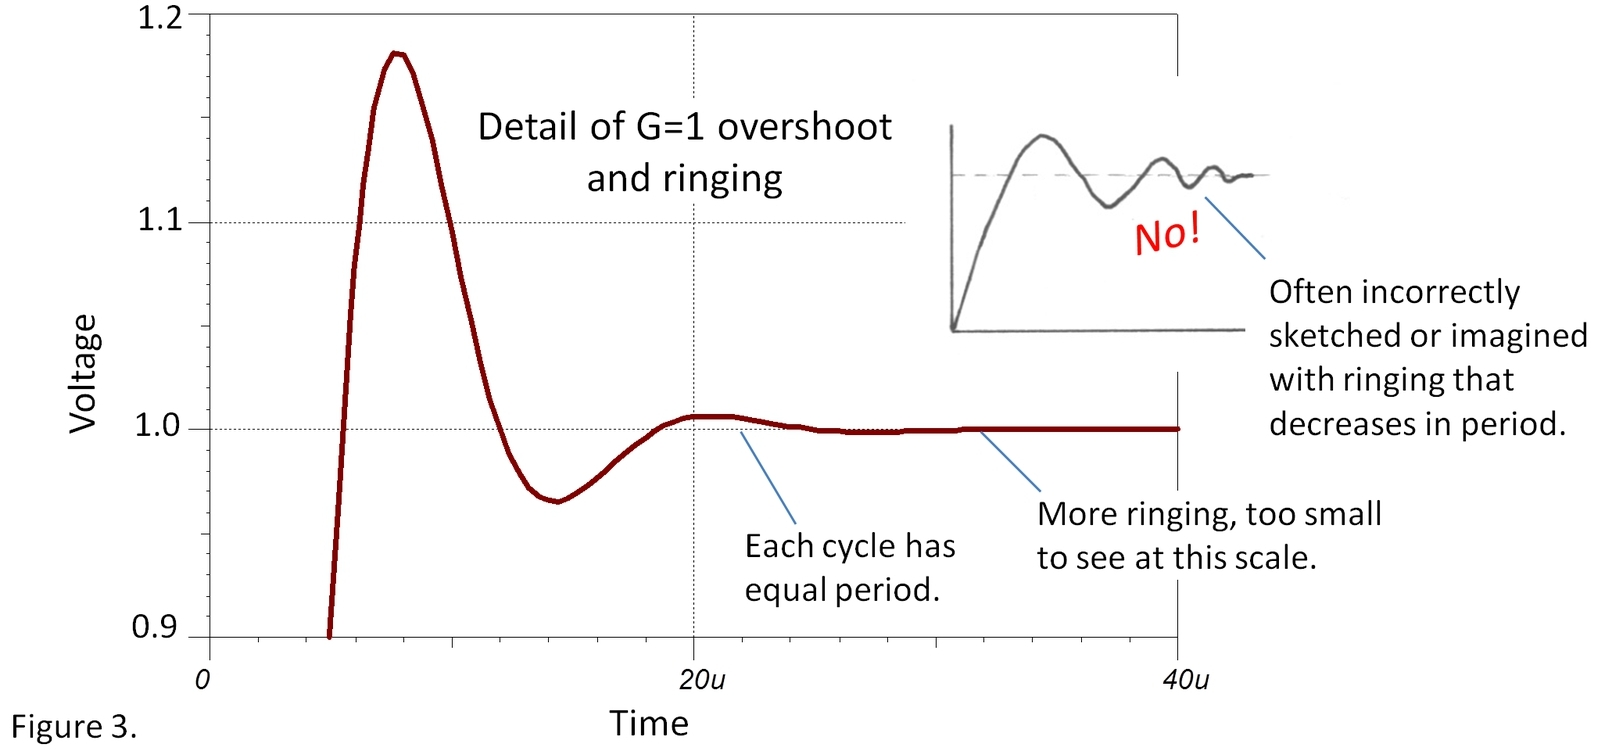 Settling Time The Signal Archives Ti E2e Community Fig 11 Op Amp Non Inverting Amplifier But Every Cycle Of Requires Same Excessive Ringing Can Be Costlya Good Reason To Select A Reasonably Well Behaved